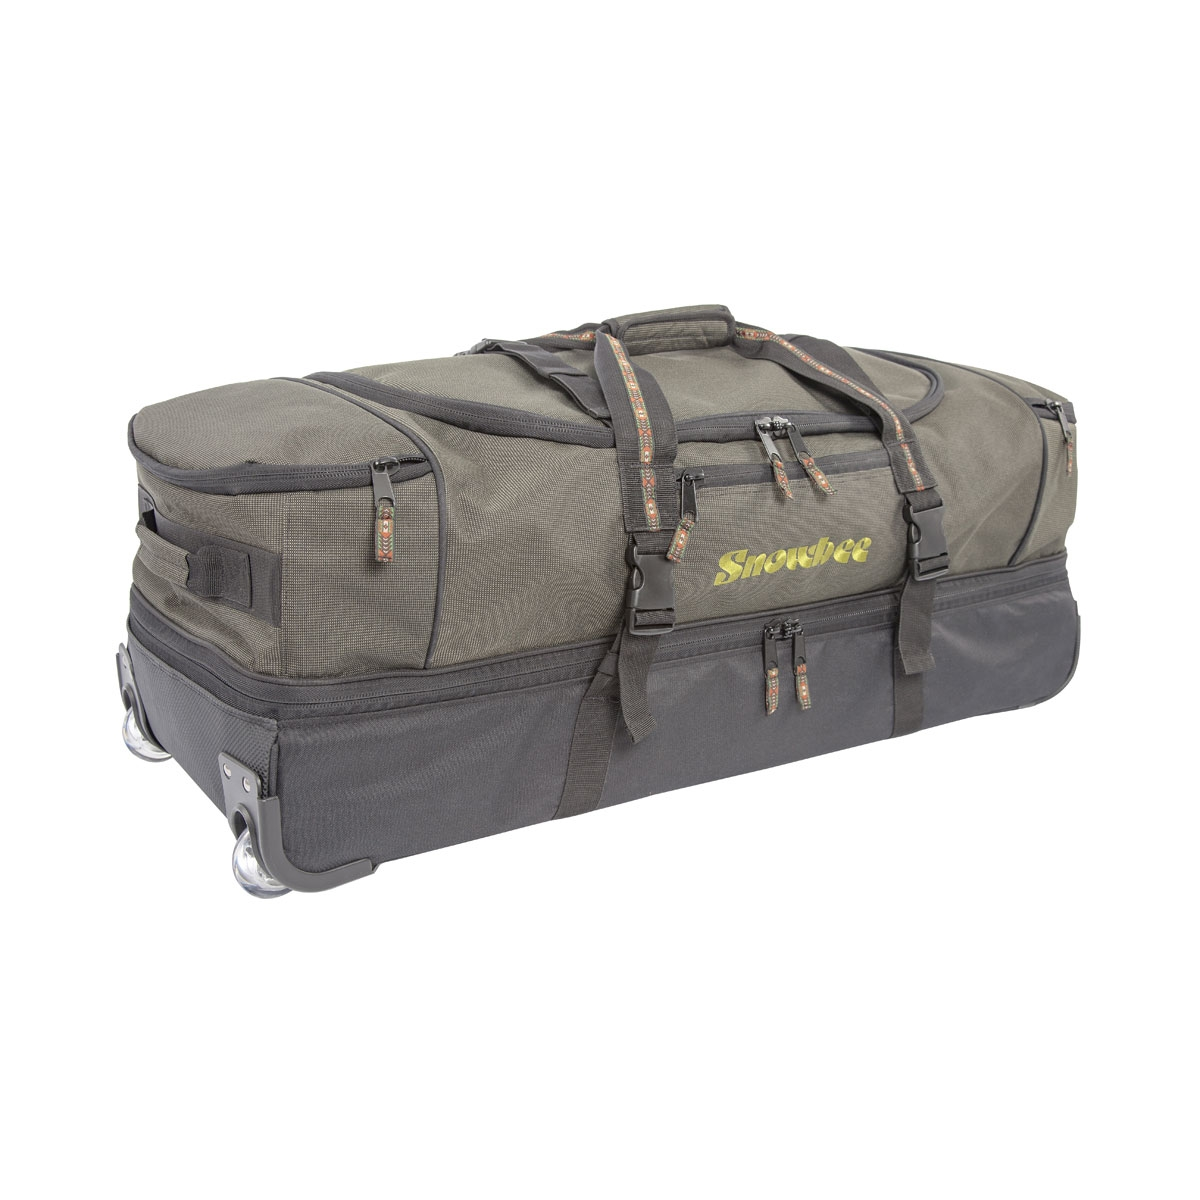 Snowbee XS Travel Bag & XS Stowaway Travel Case | Uttings.co.uk